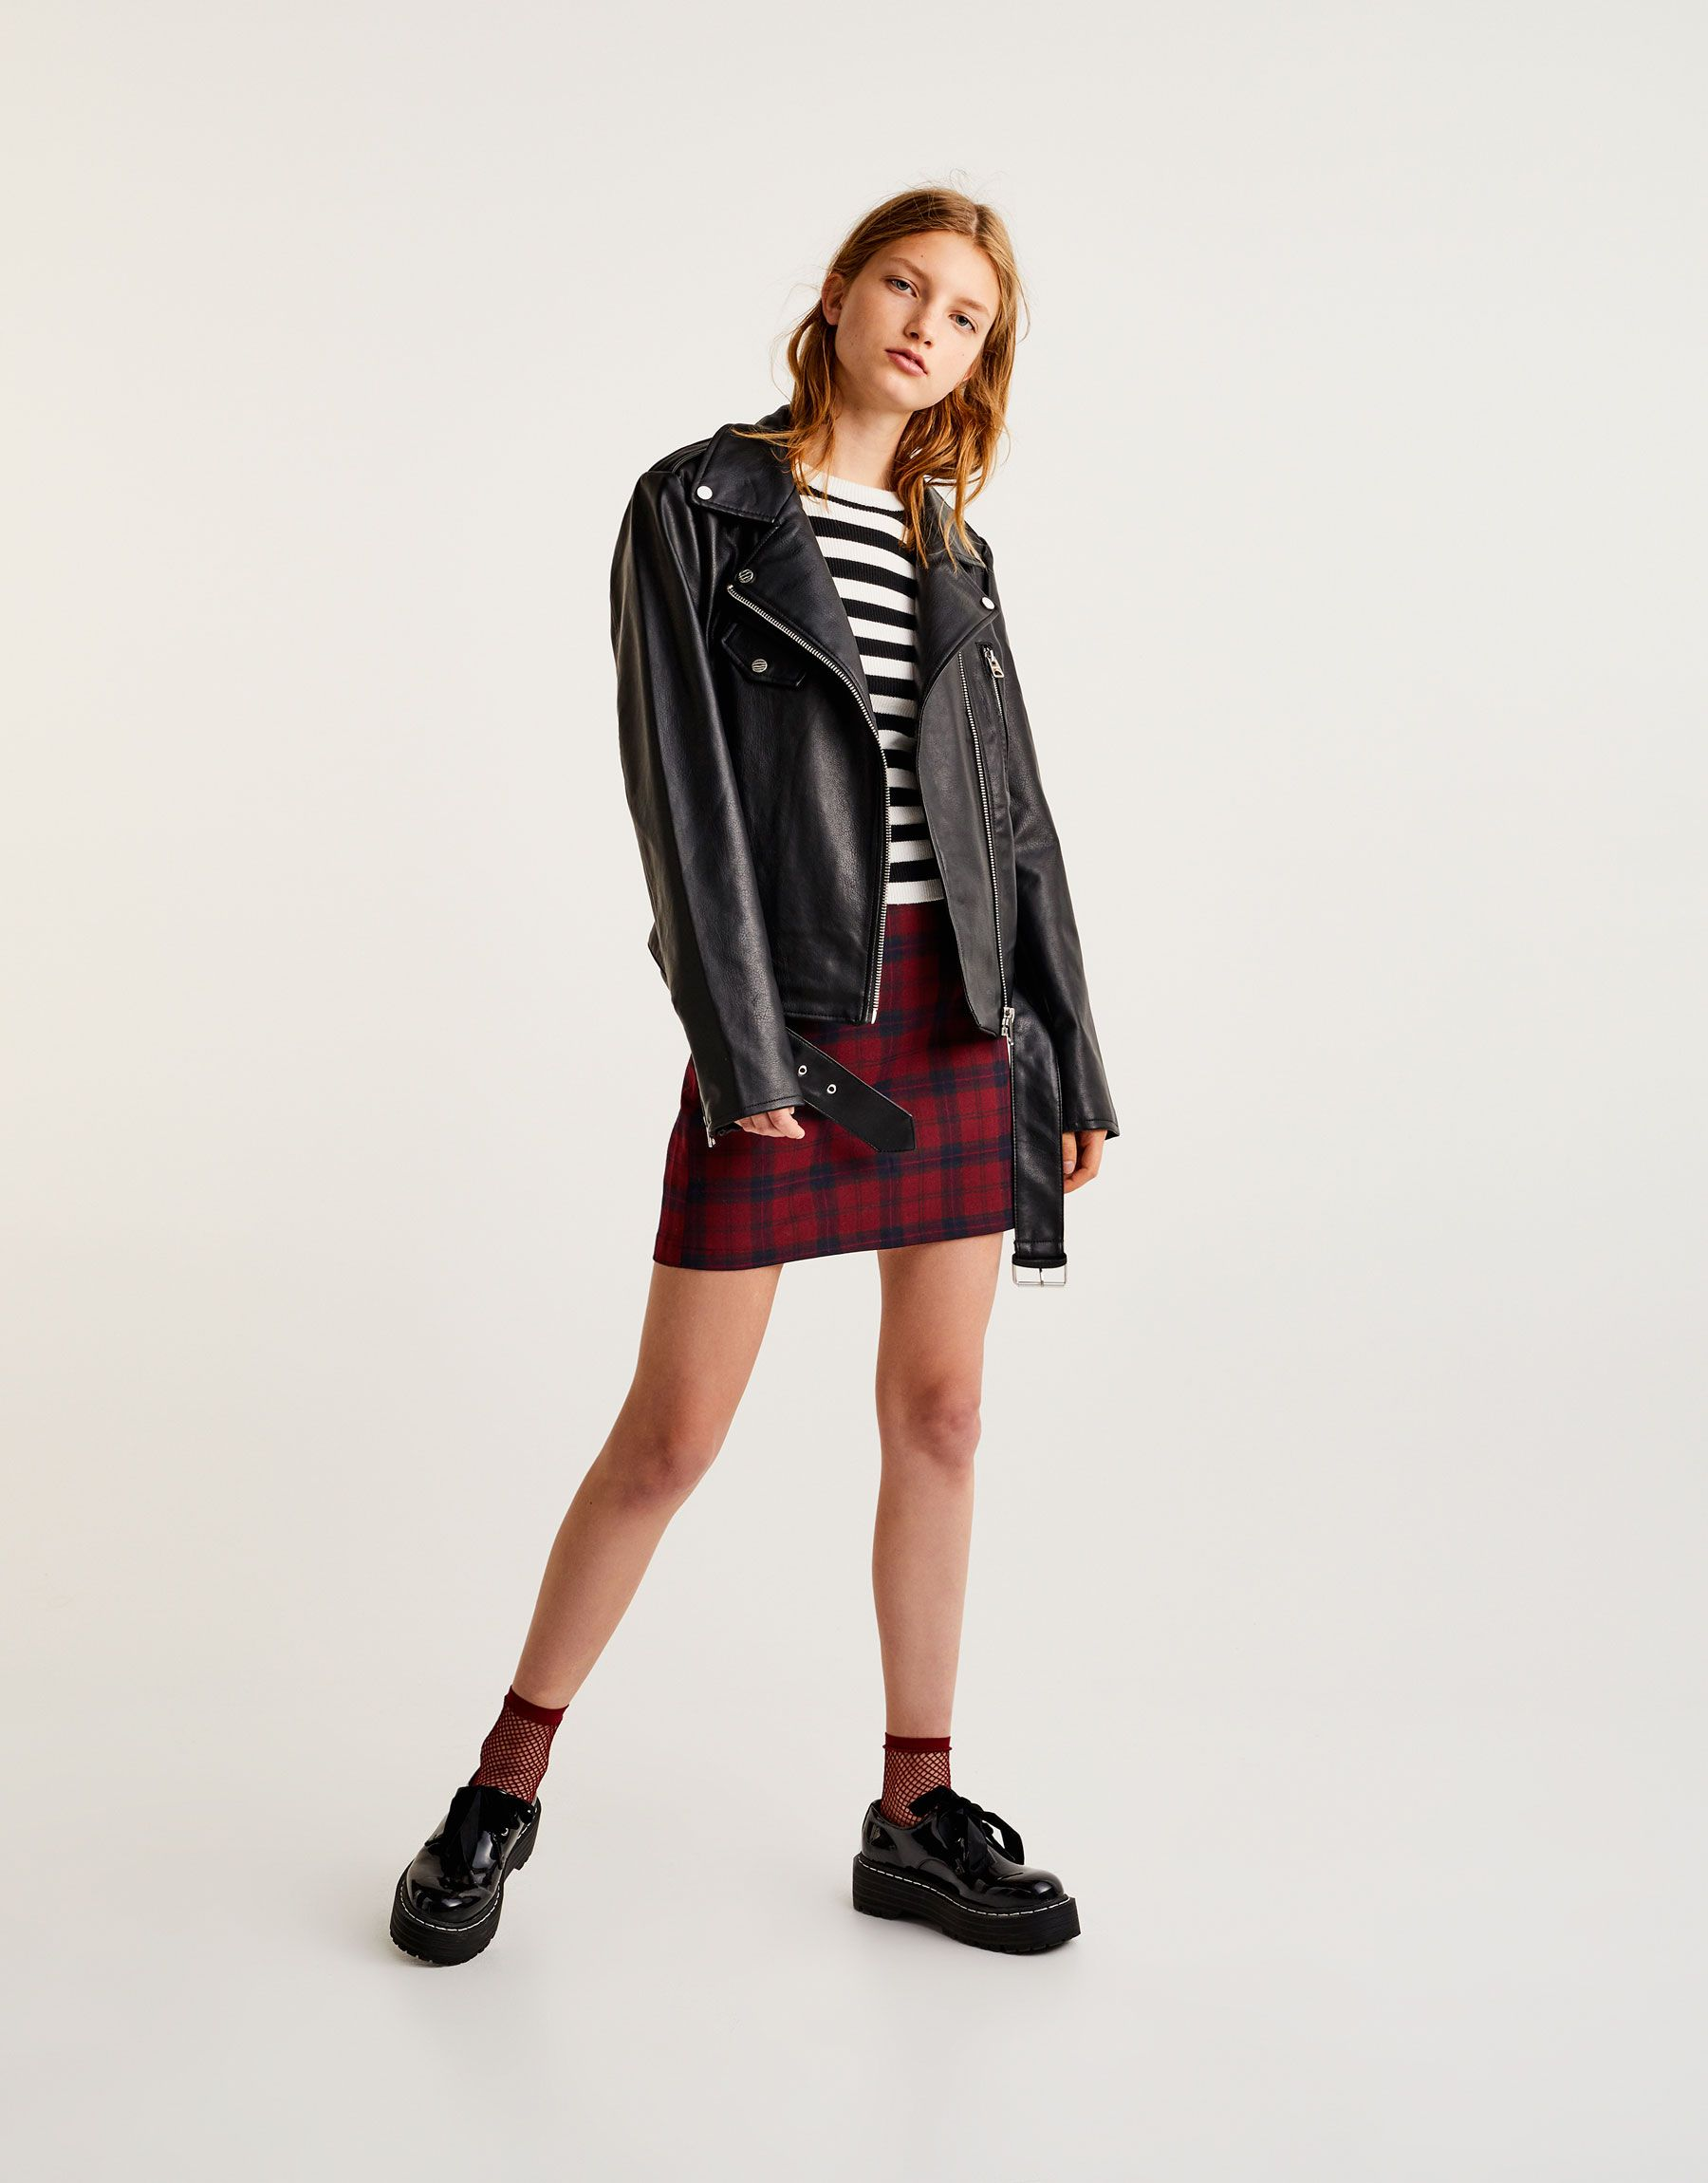 ed29647a7a24 Faux leather biker jacket with belt - New - Woman - PULL BEAR United Kingdom